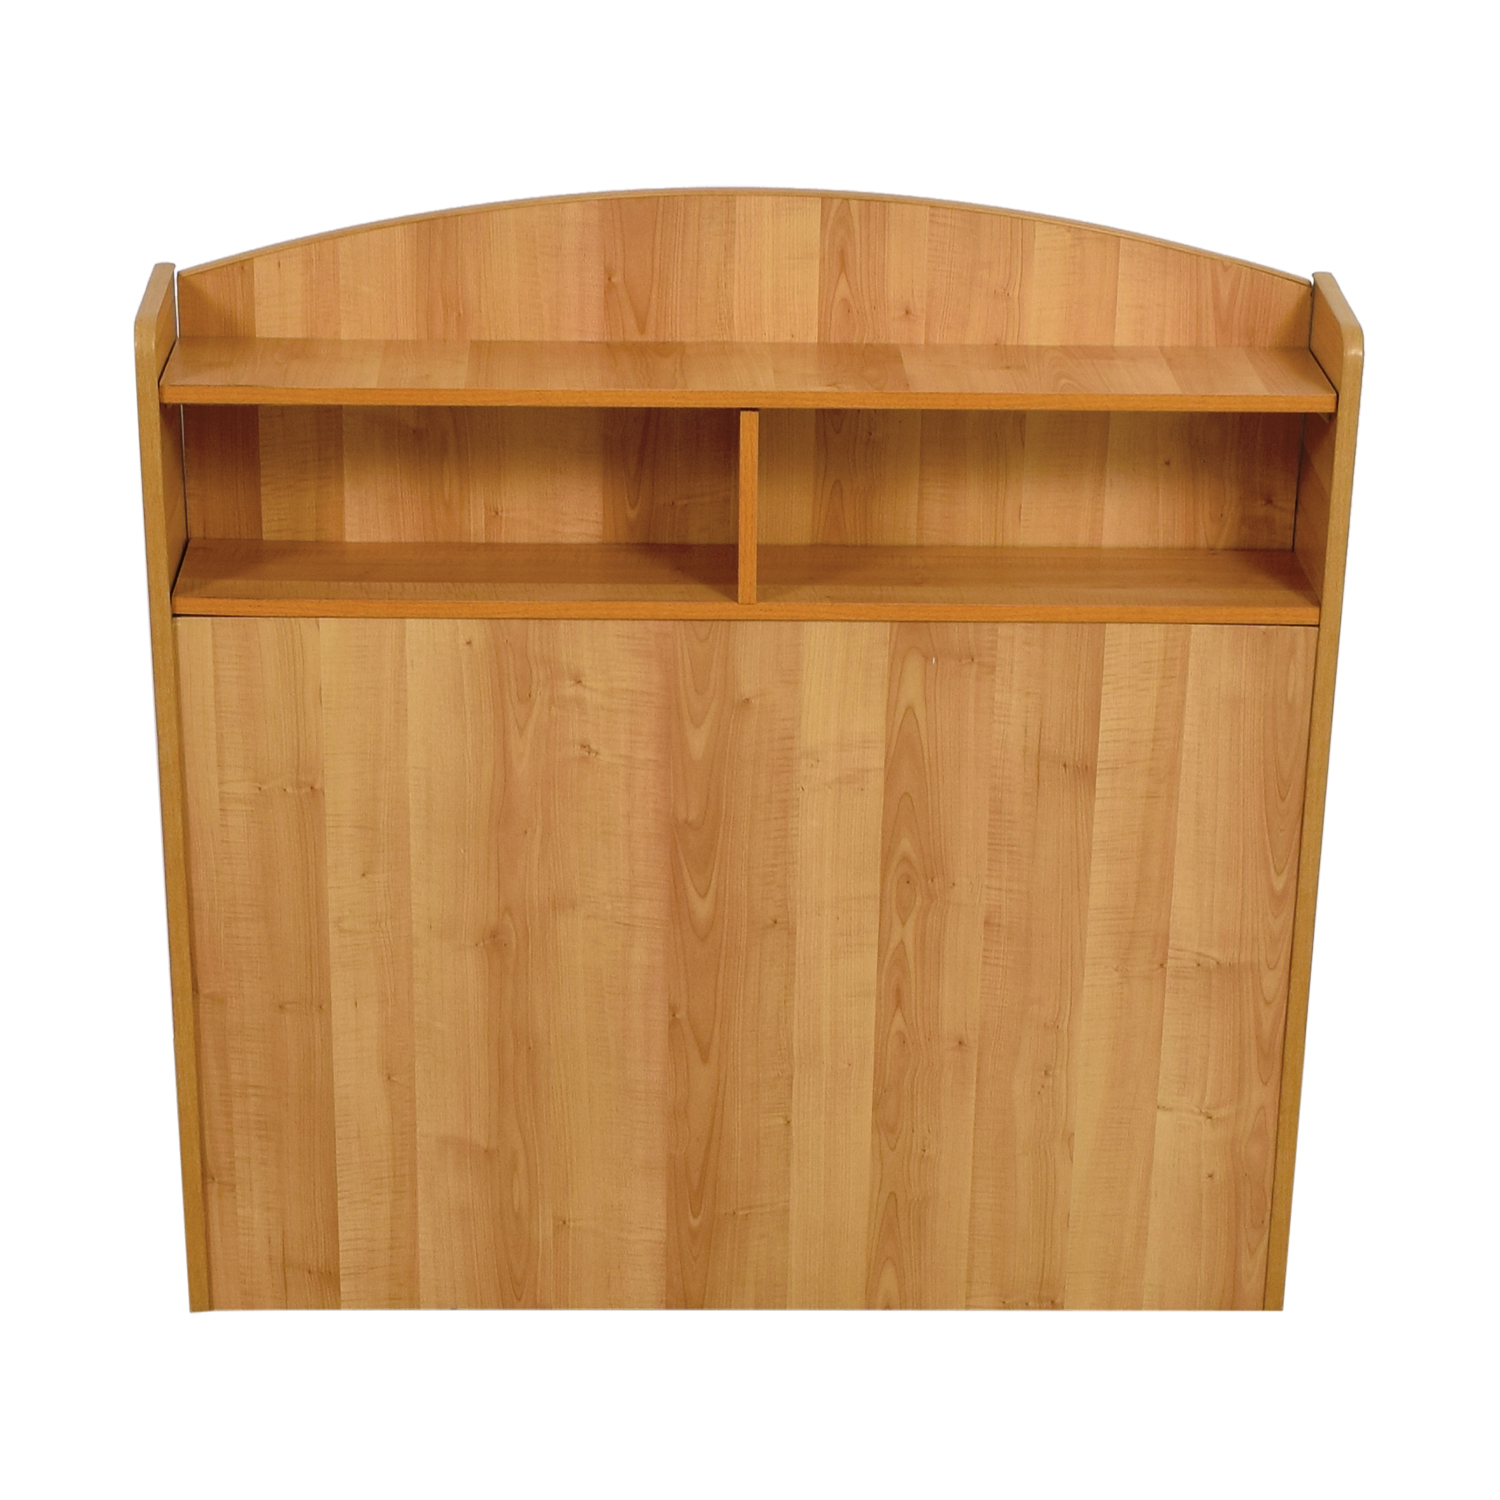 Captain Pine Wood Twin Headboard with Shelves / Beds